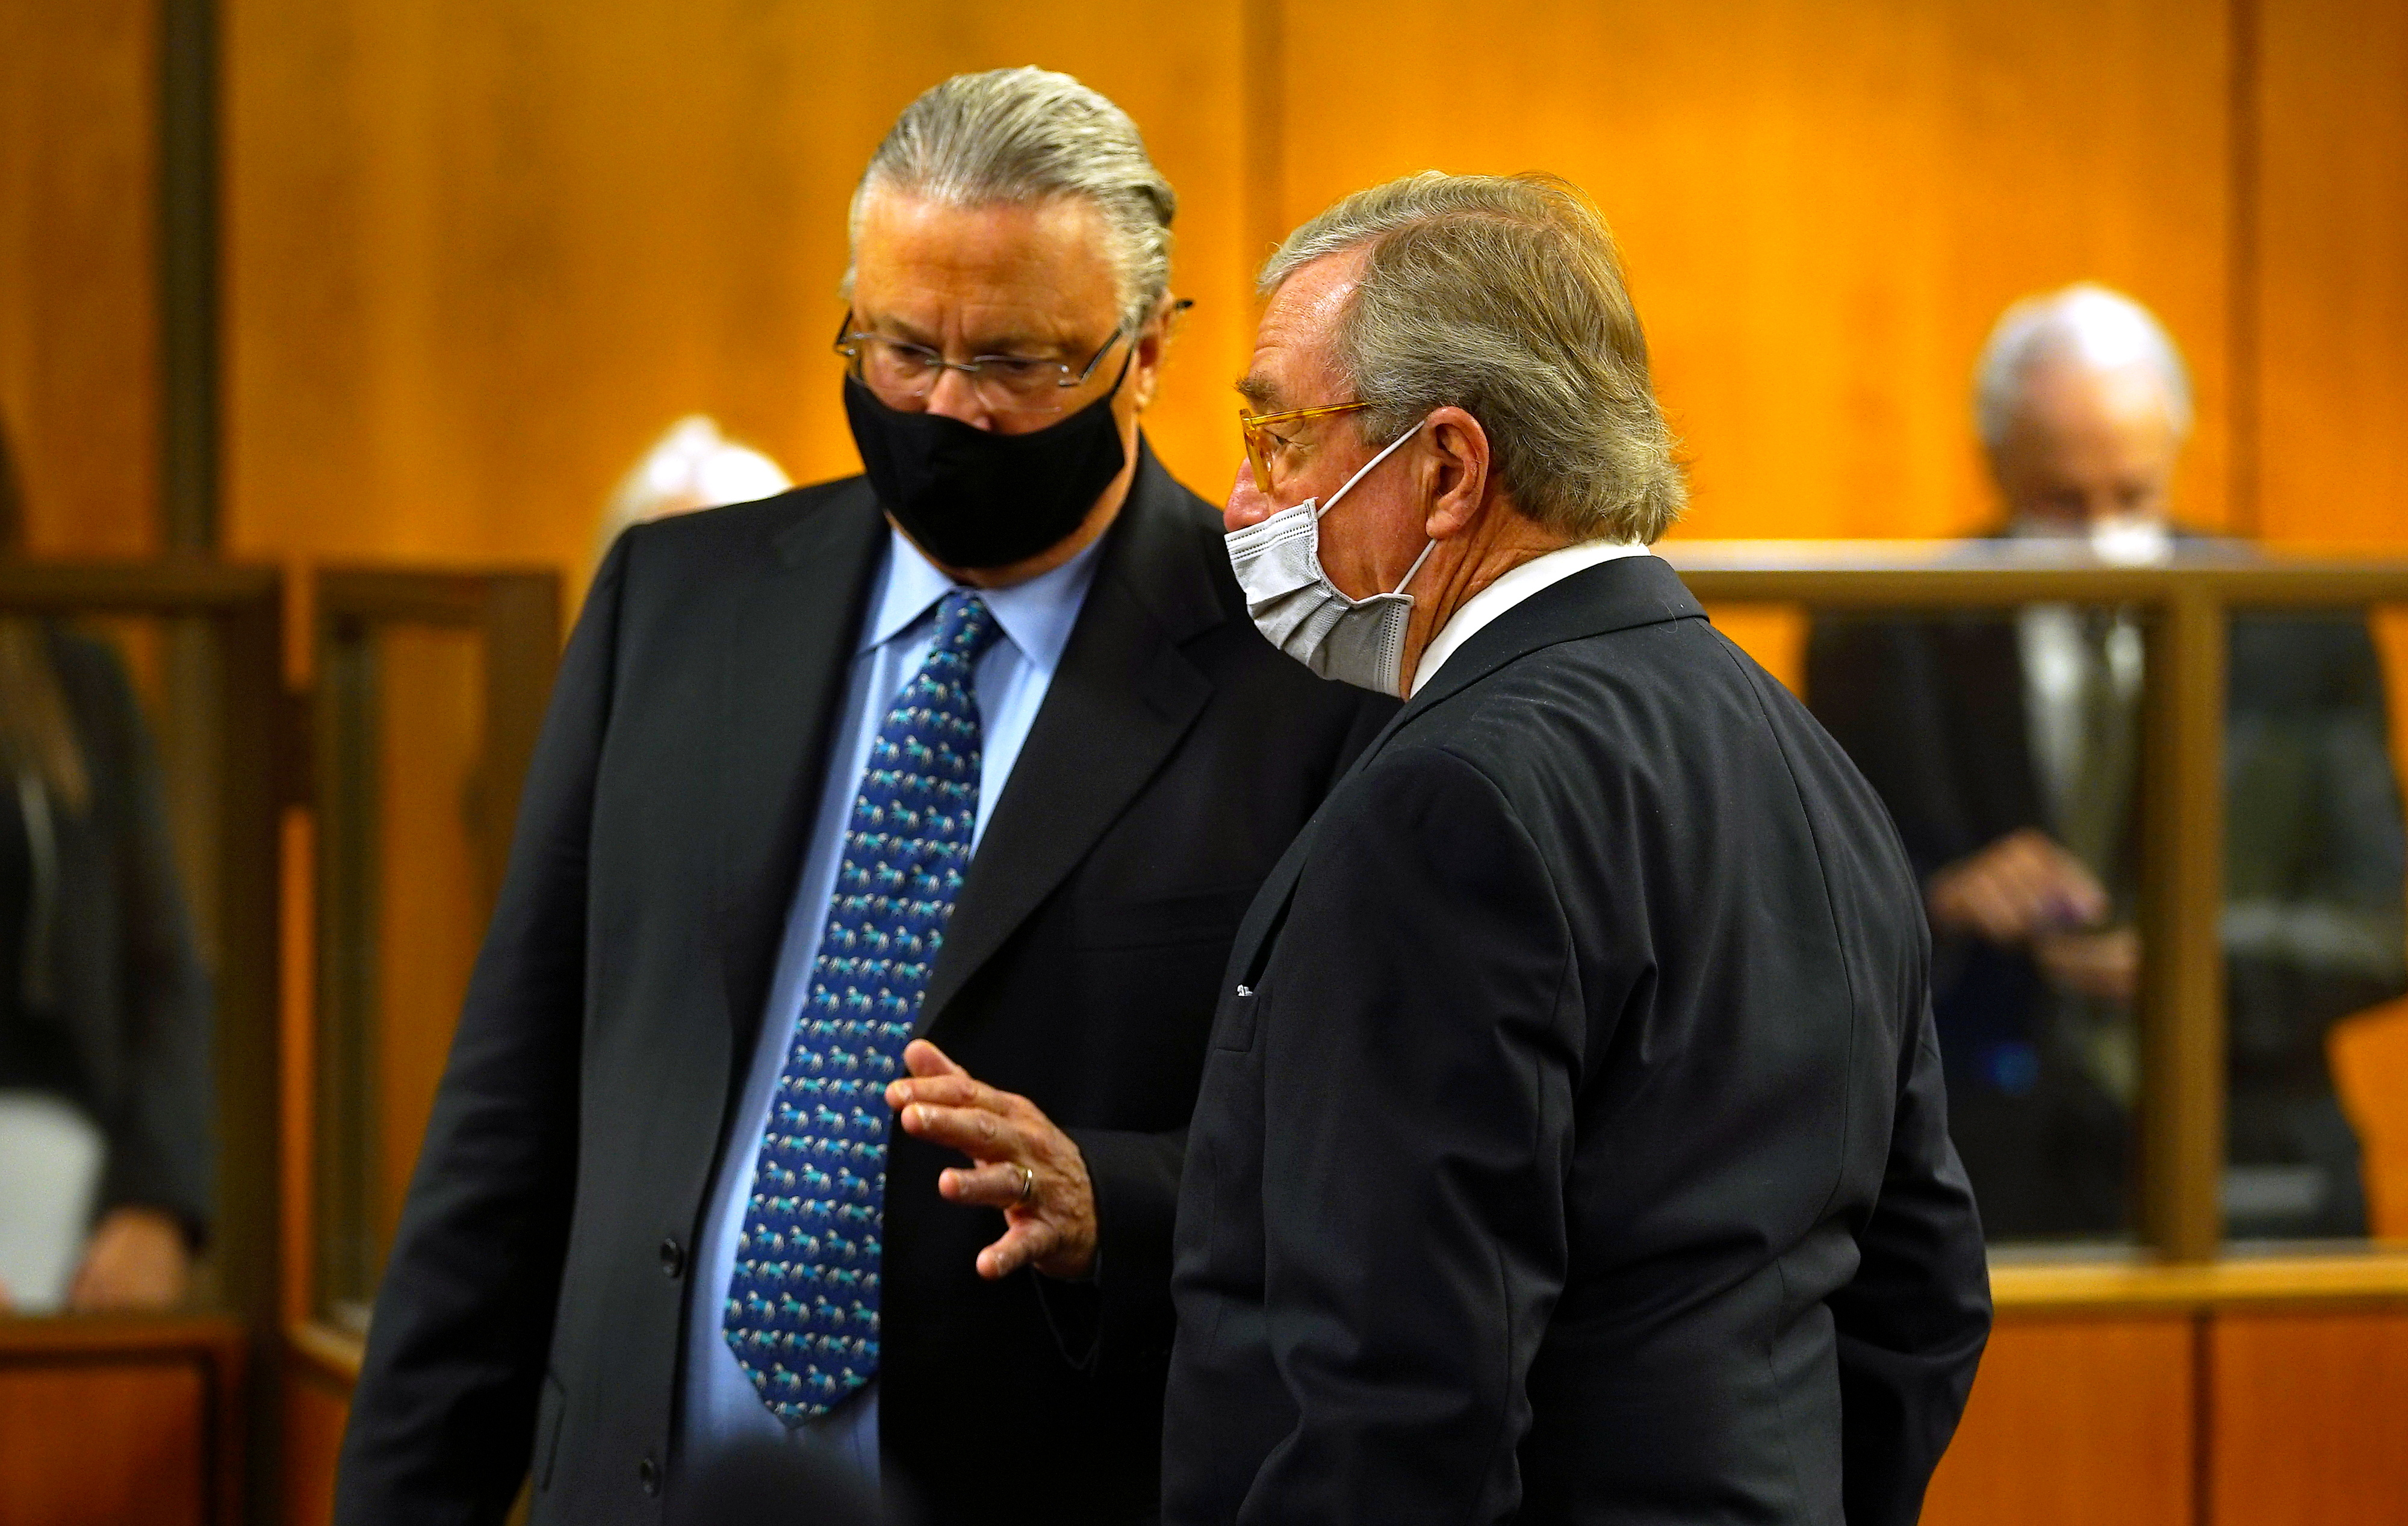 Robert Durst defense attorneys Dick DeGuerin (R) and David Z. Chesnoff confer as they appear before Judge Mark E. Windham who denied an emergency motion by the defense team seeking to postpone his trial at Inglewood Courthouse in Inglewood, California, U.S. May 17, 2021.  Al Seib/Pool via REUTERS